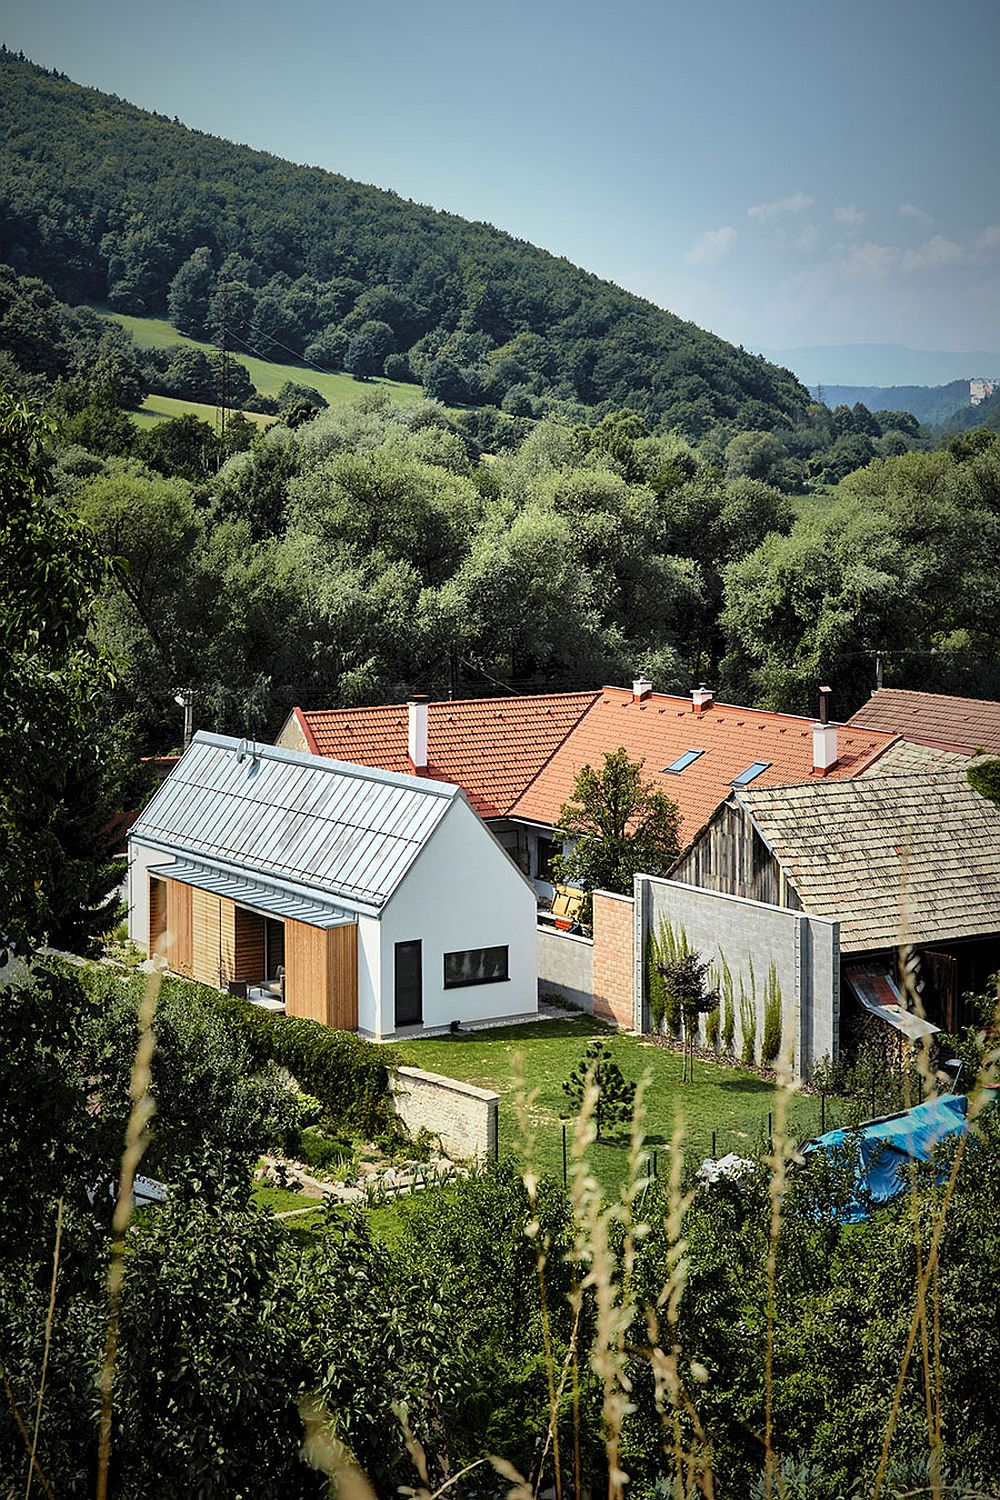 Beautiful and cozy Slovakian home set in a rustic and hilly backdrop